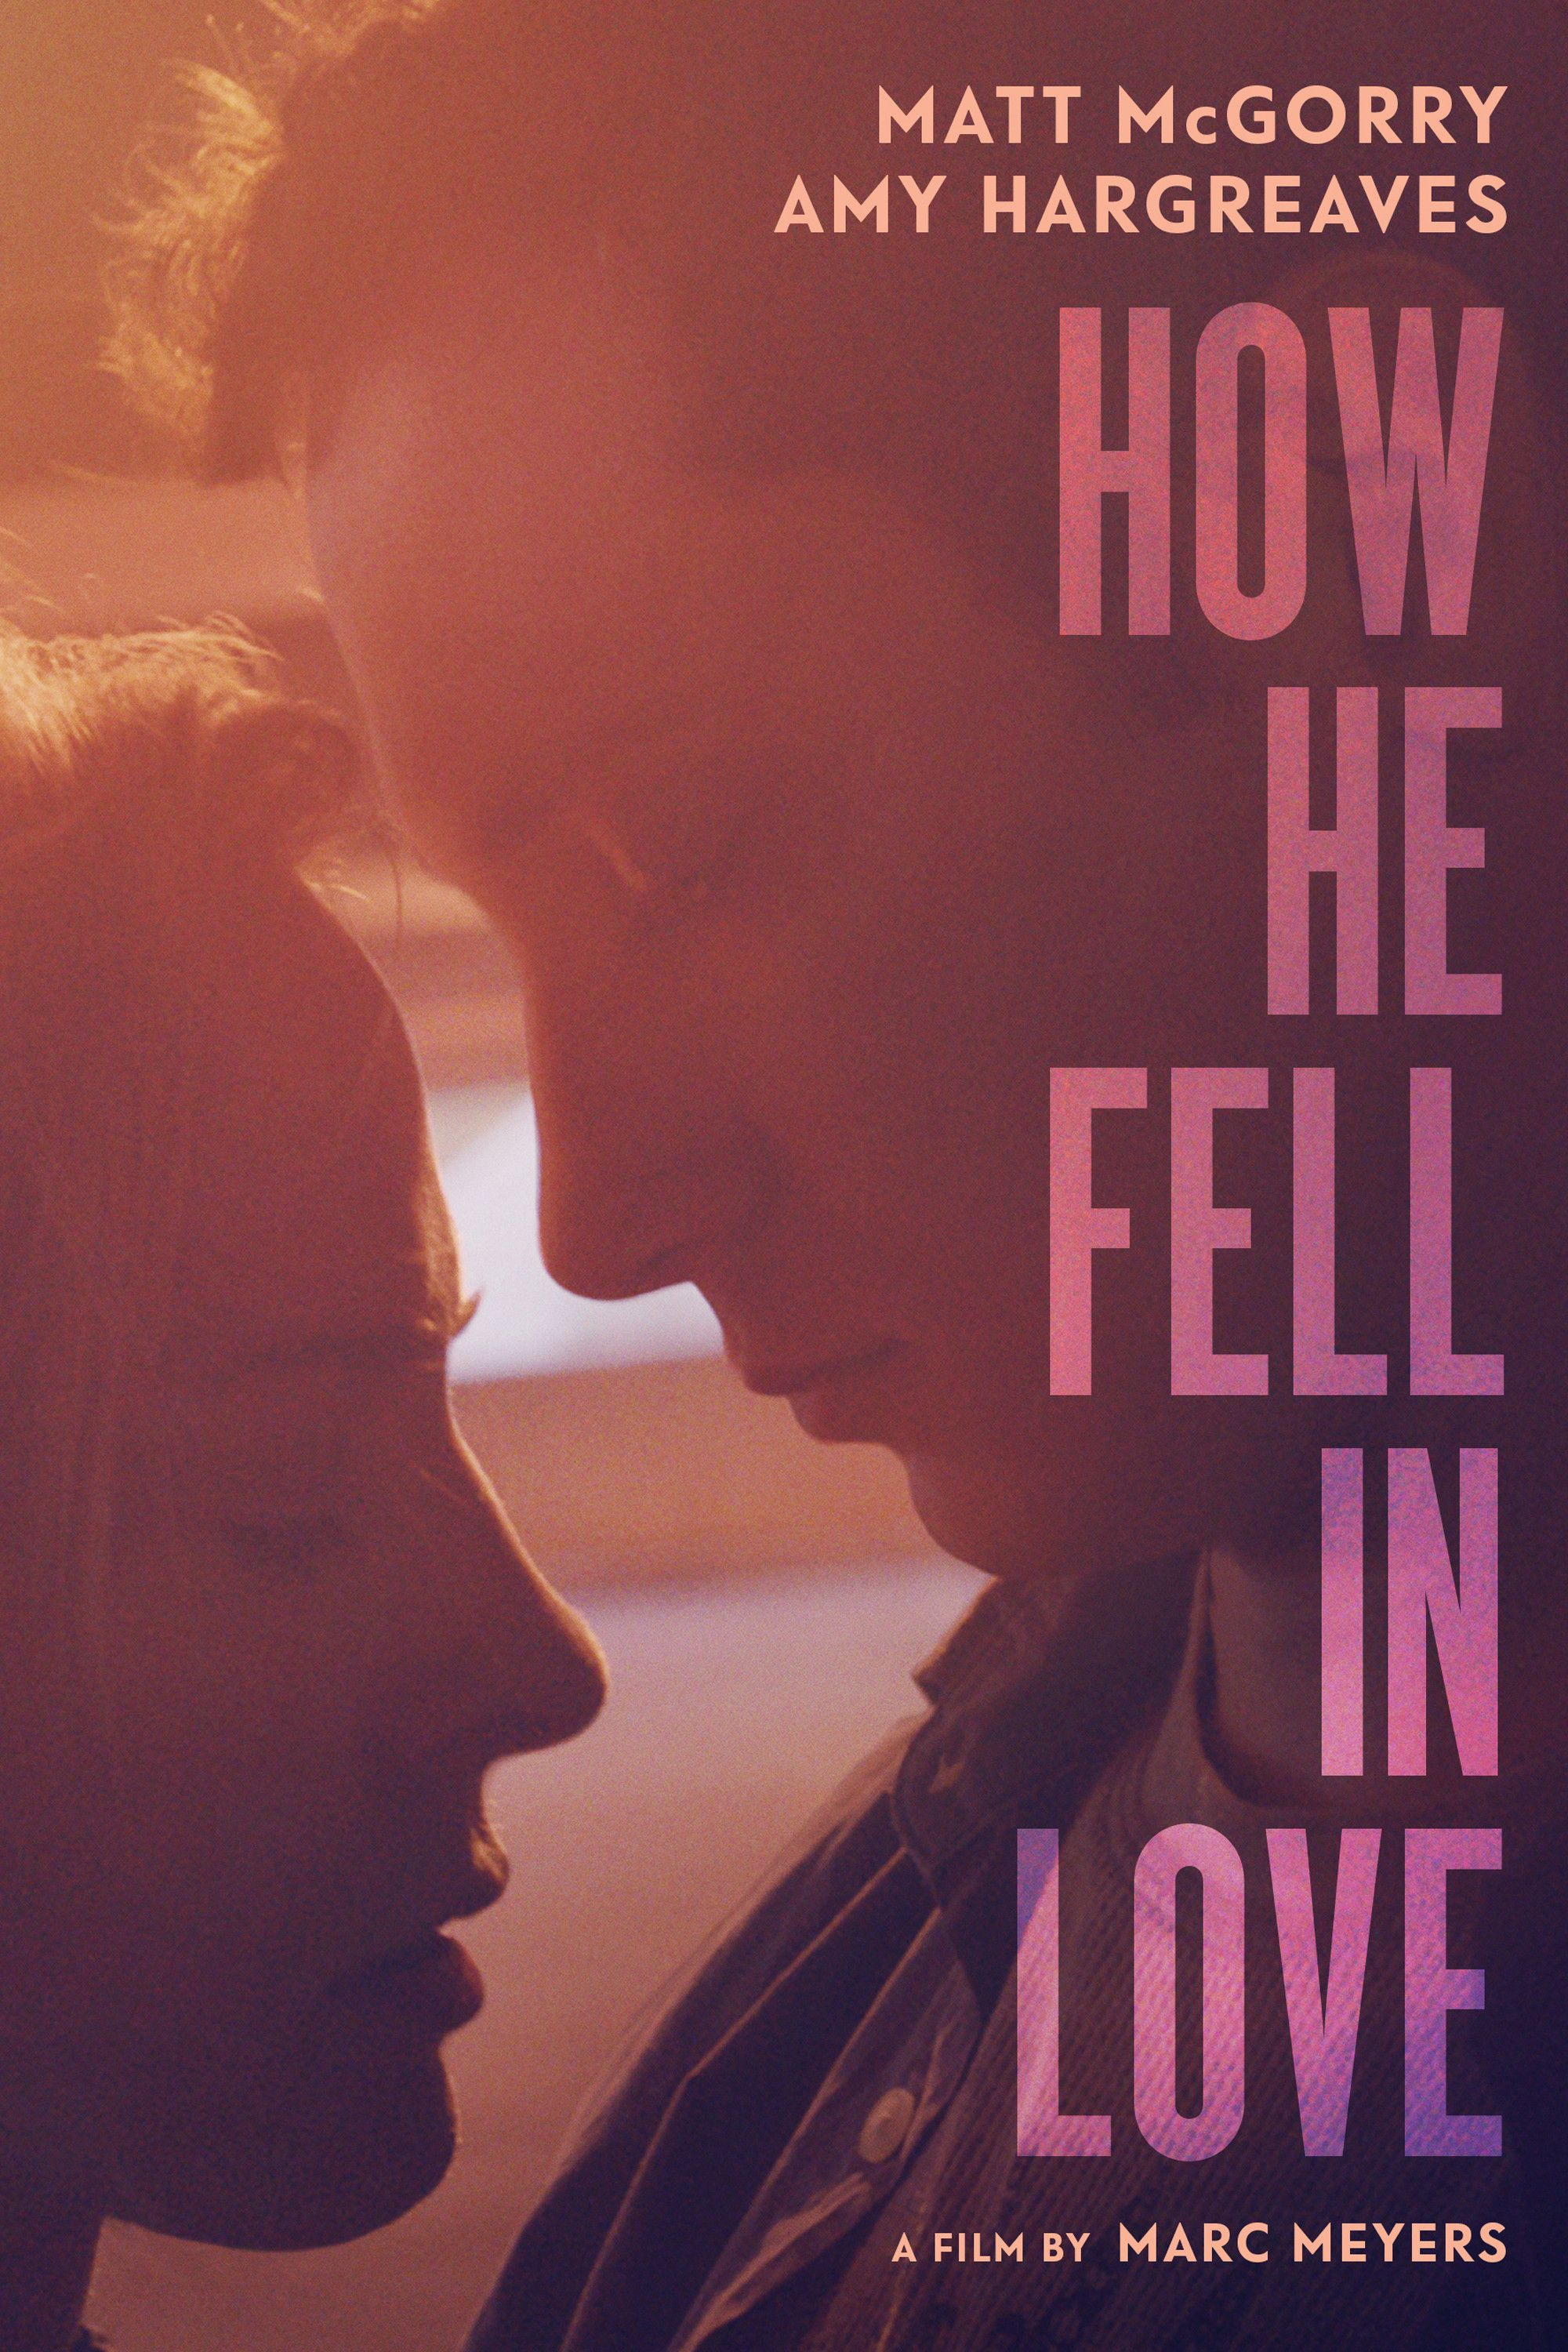 How He Fell In Love Movie Poster Matt Mcgorry Amy Hargreaves Britne Oldford Howhefellinlove Ma Falling In Love Movie Love Movie Full Movies Online Free